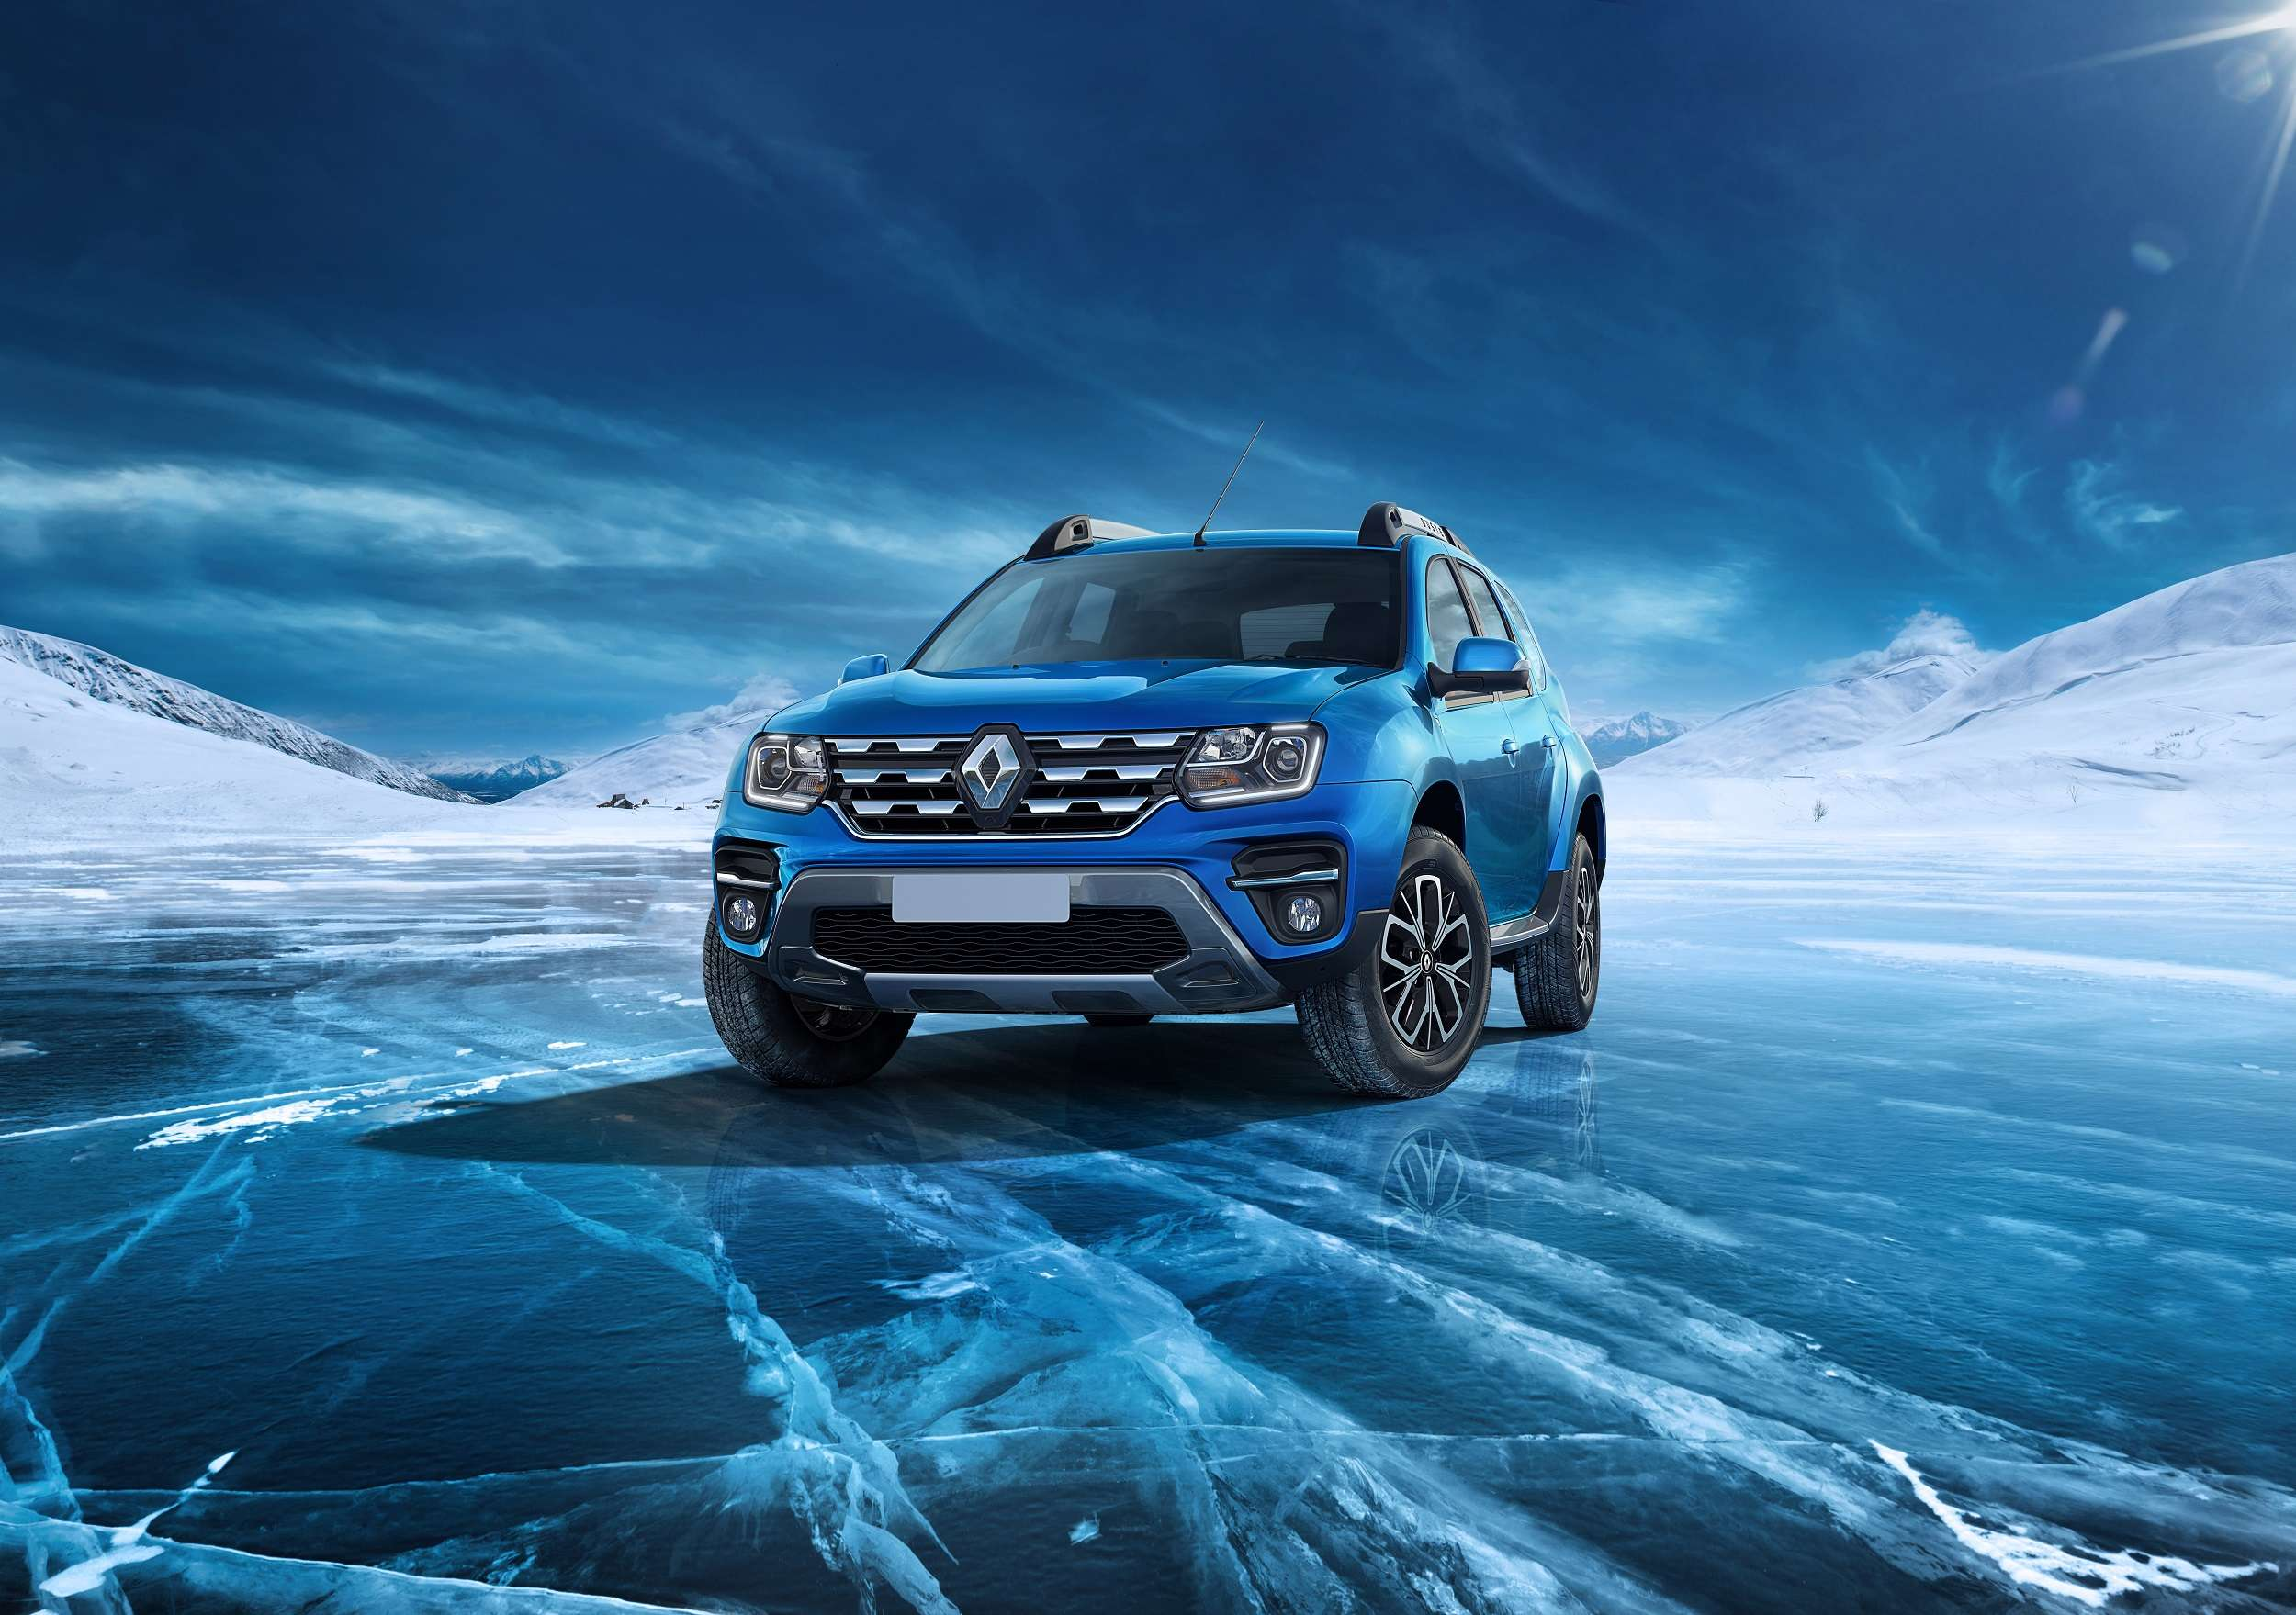 renault updated duster price: Renault India launches updated